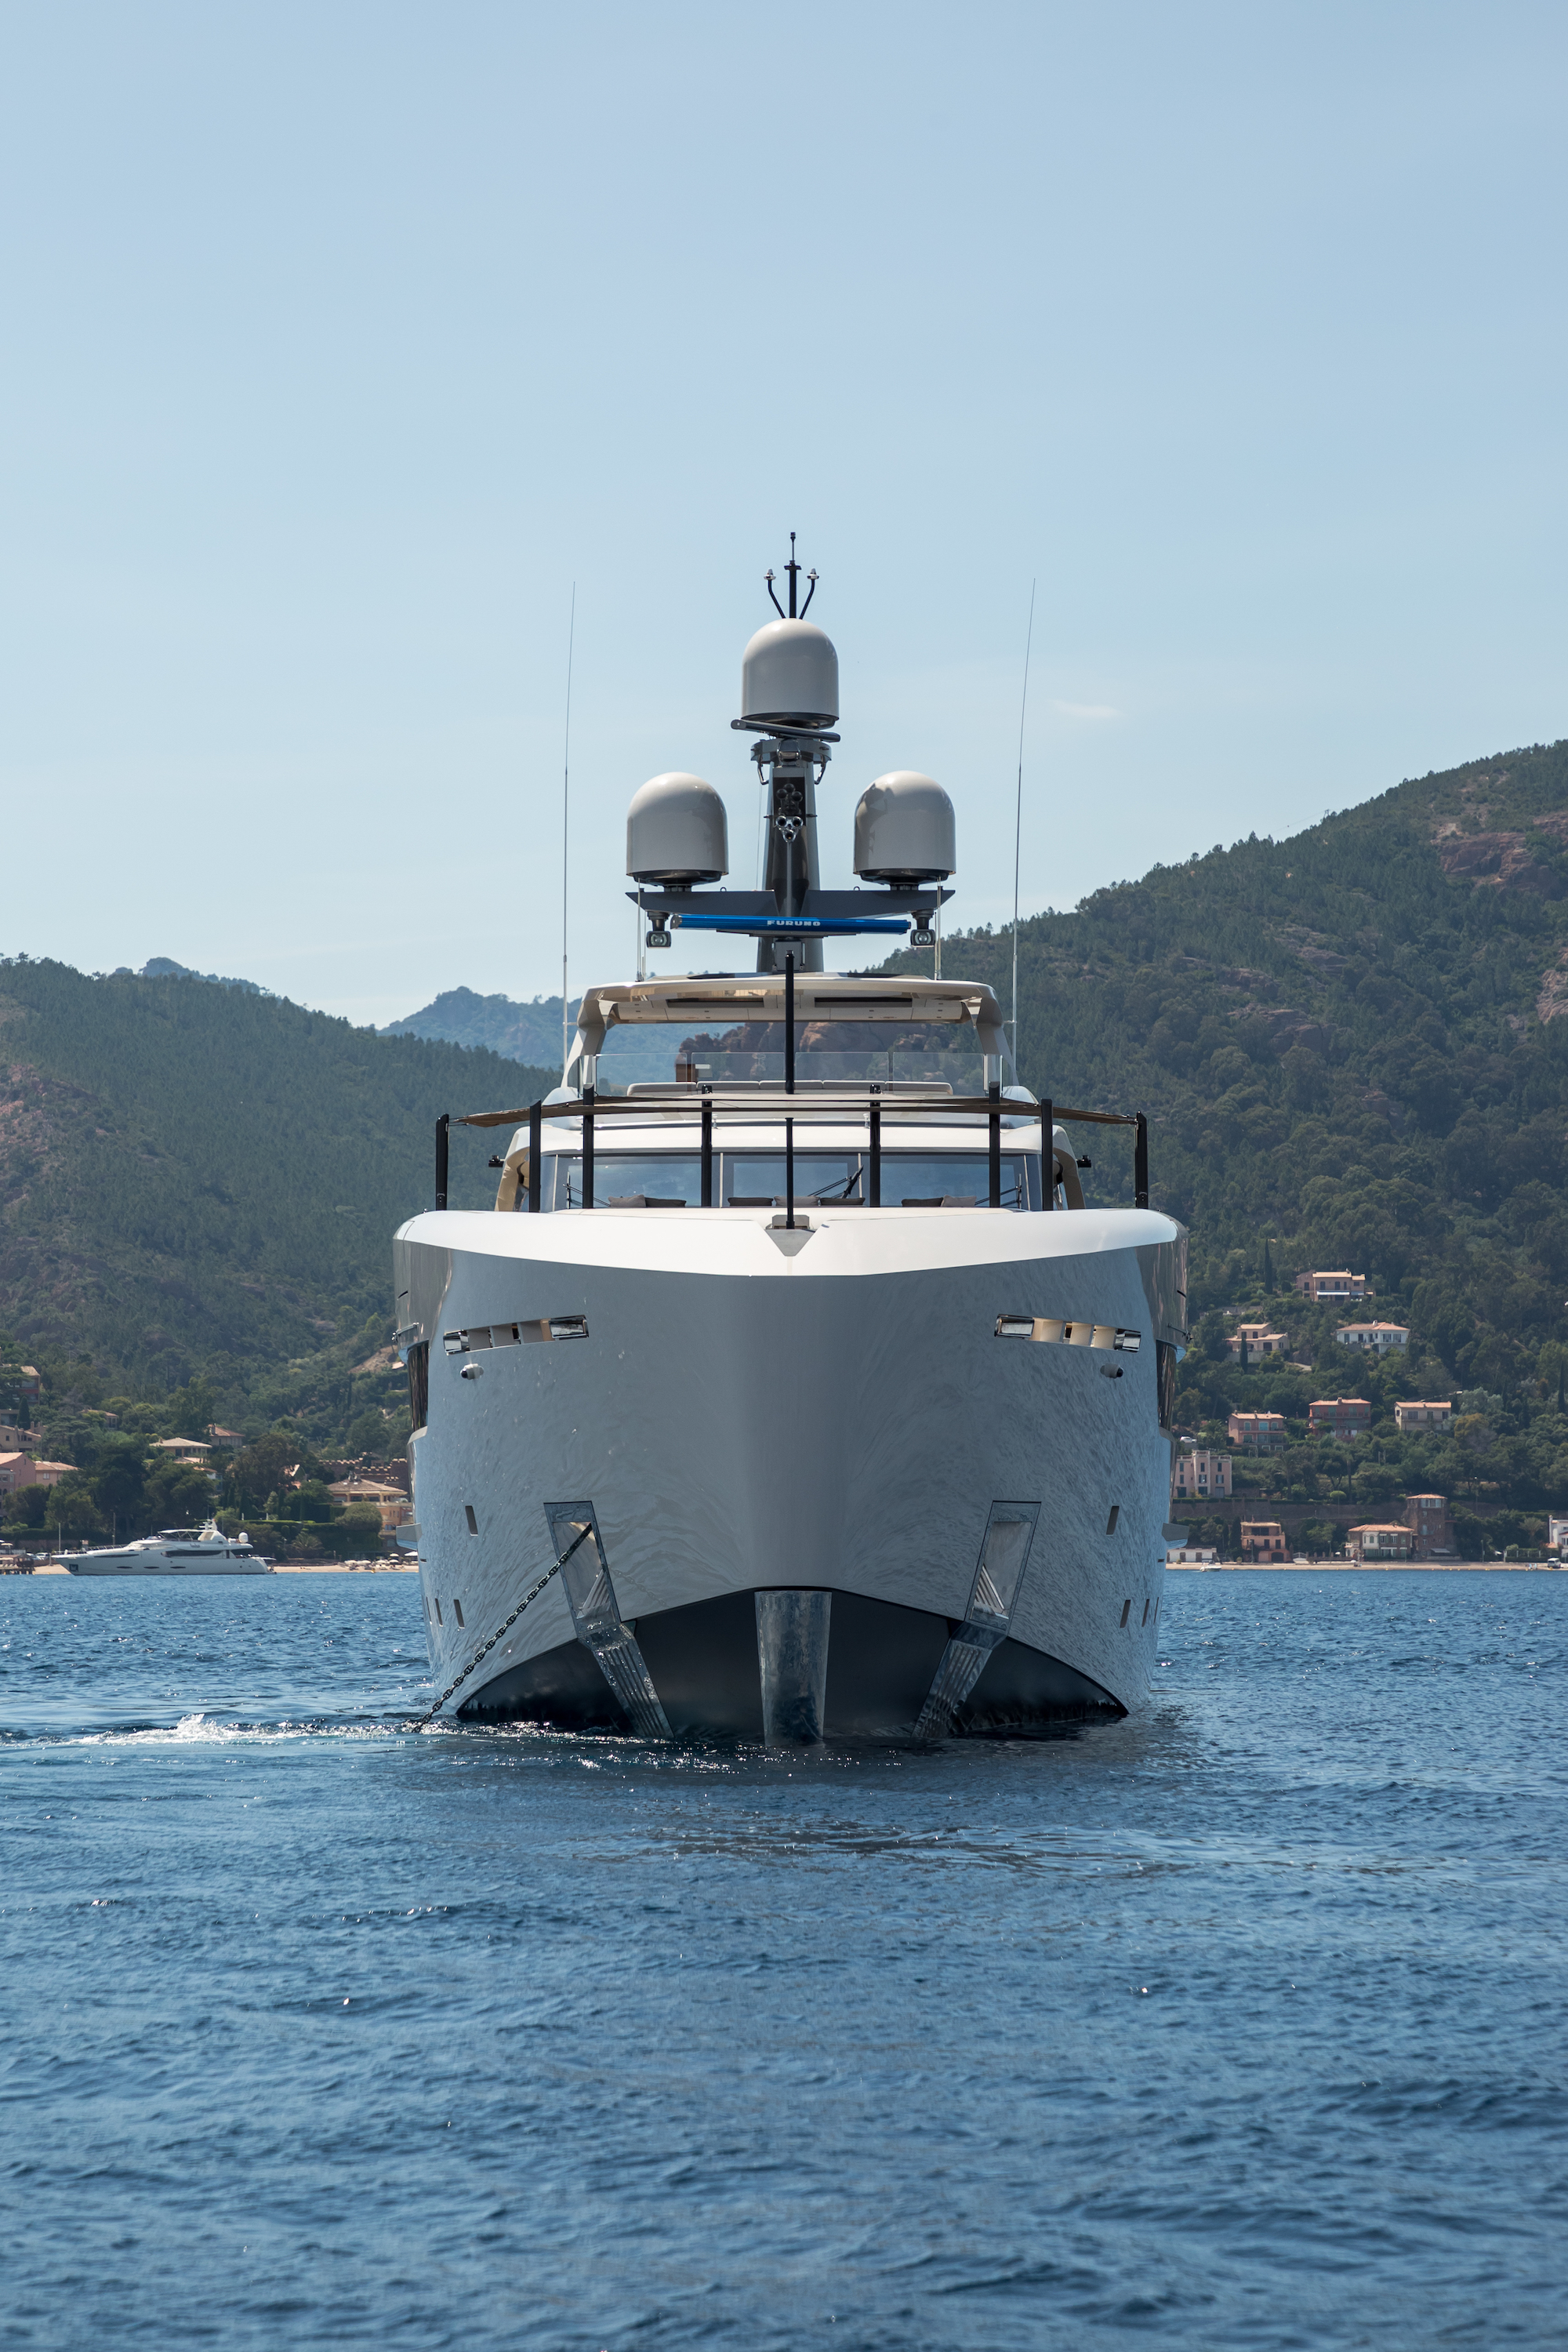 Luxury Yacht Engine Room: Bow Image Gallery – Luxury Yacht Browser